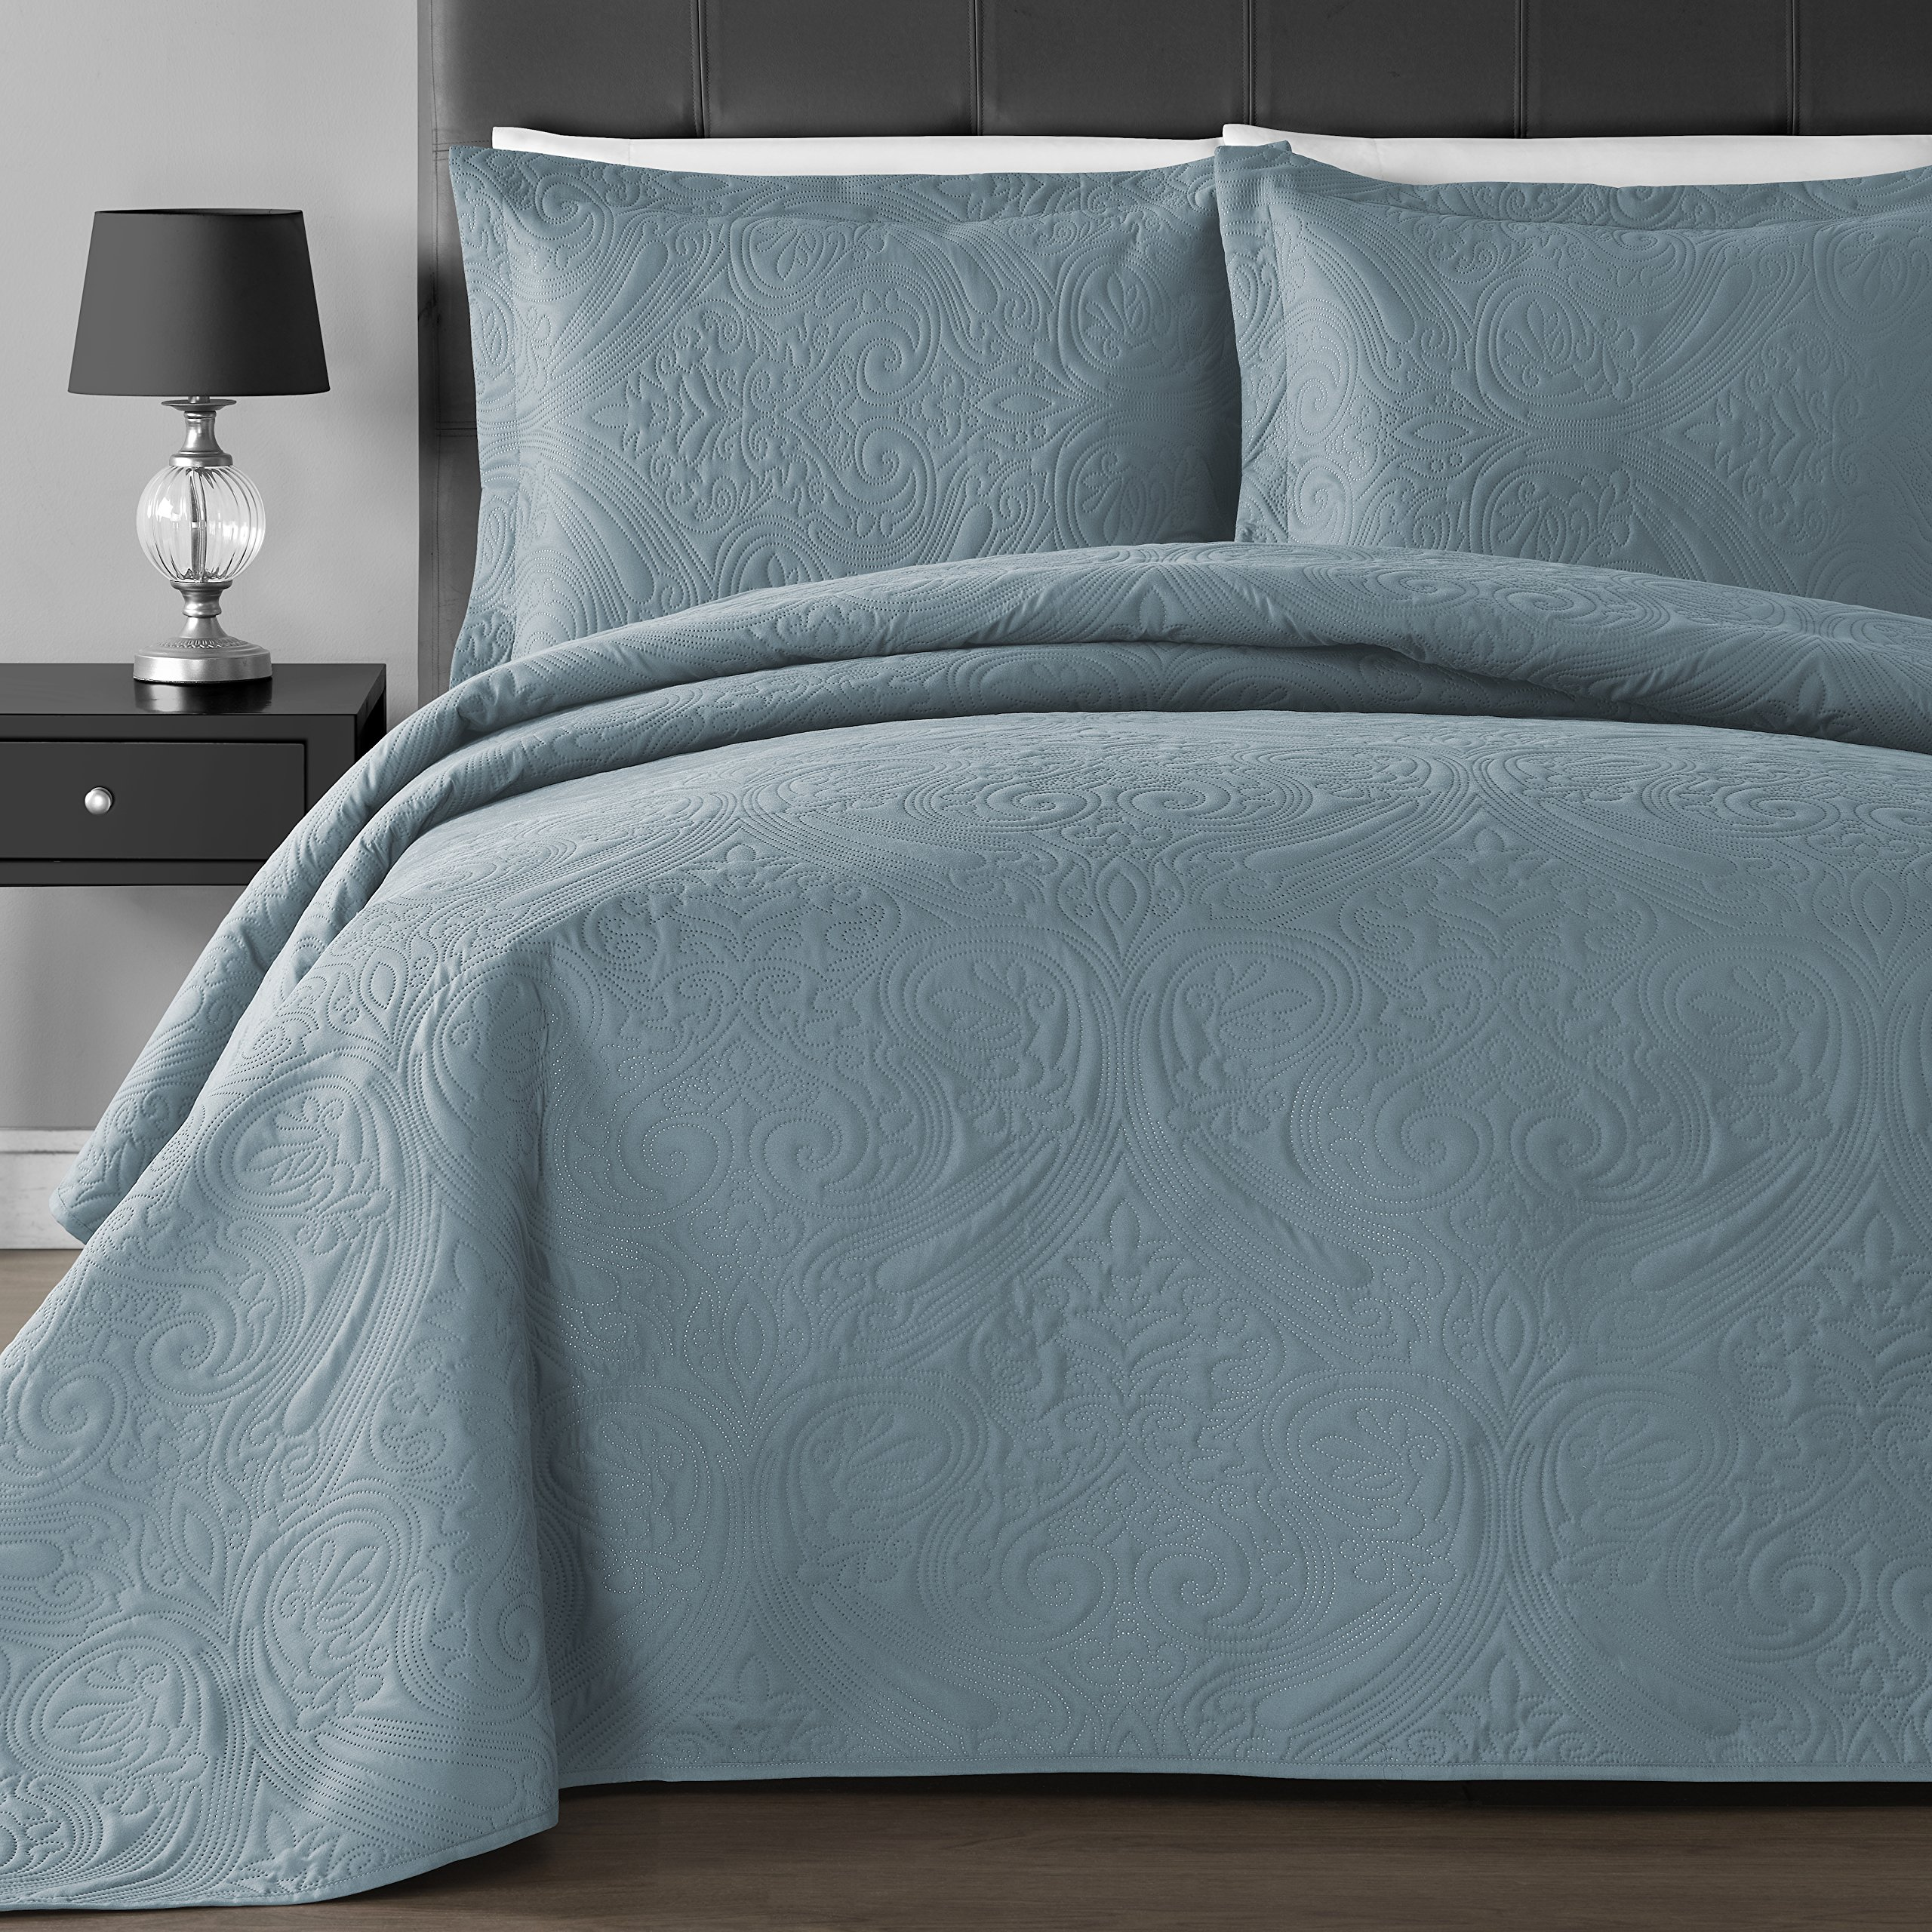 Comfy Bedding Extra Lightweight and Oversized Thermal Pressing Floral 3-piece Coverlet Set (Full/Queen, Spa Blue)